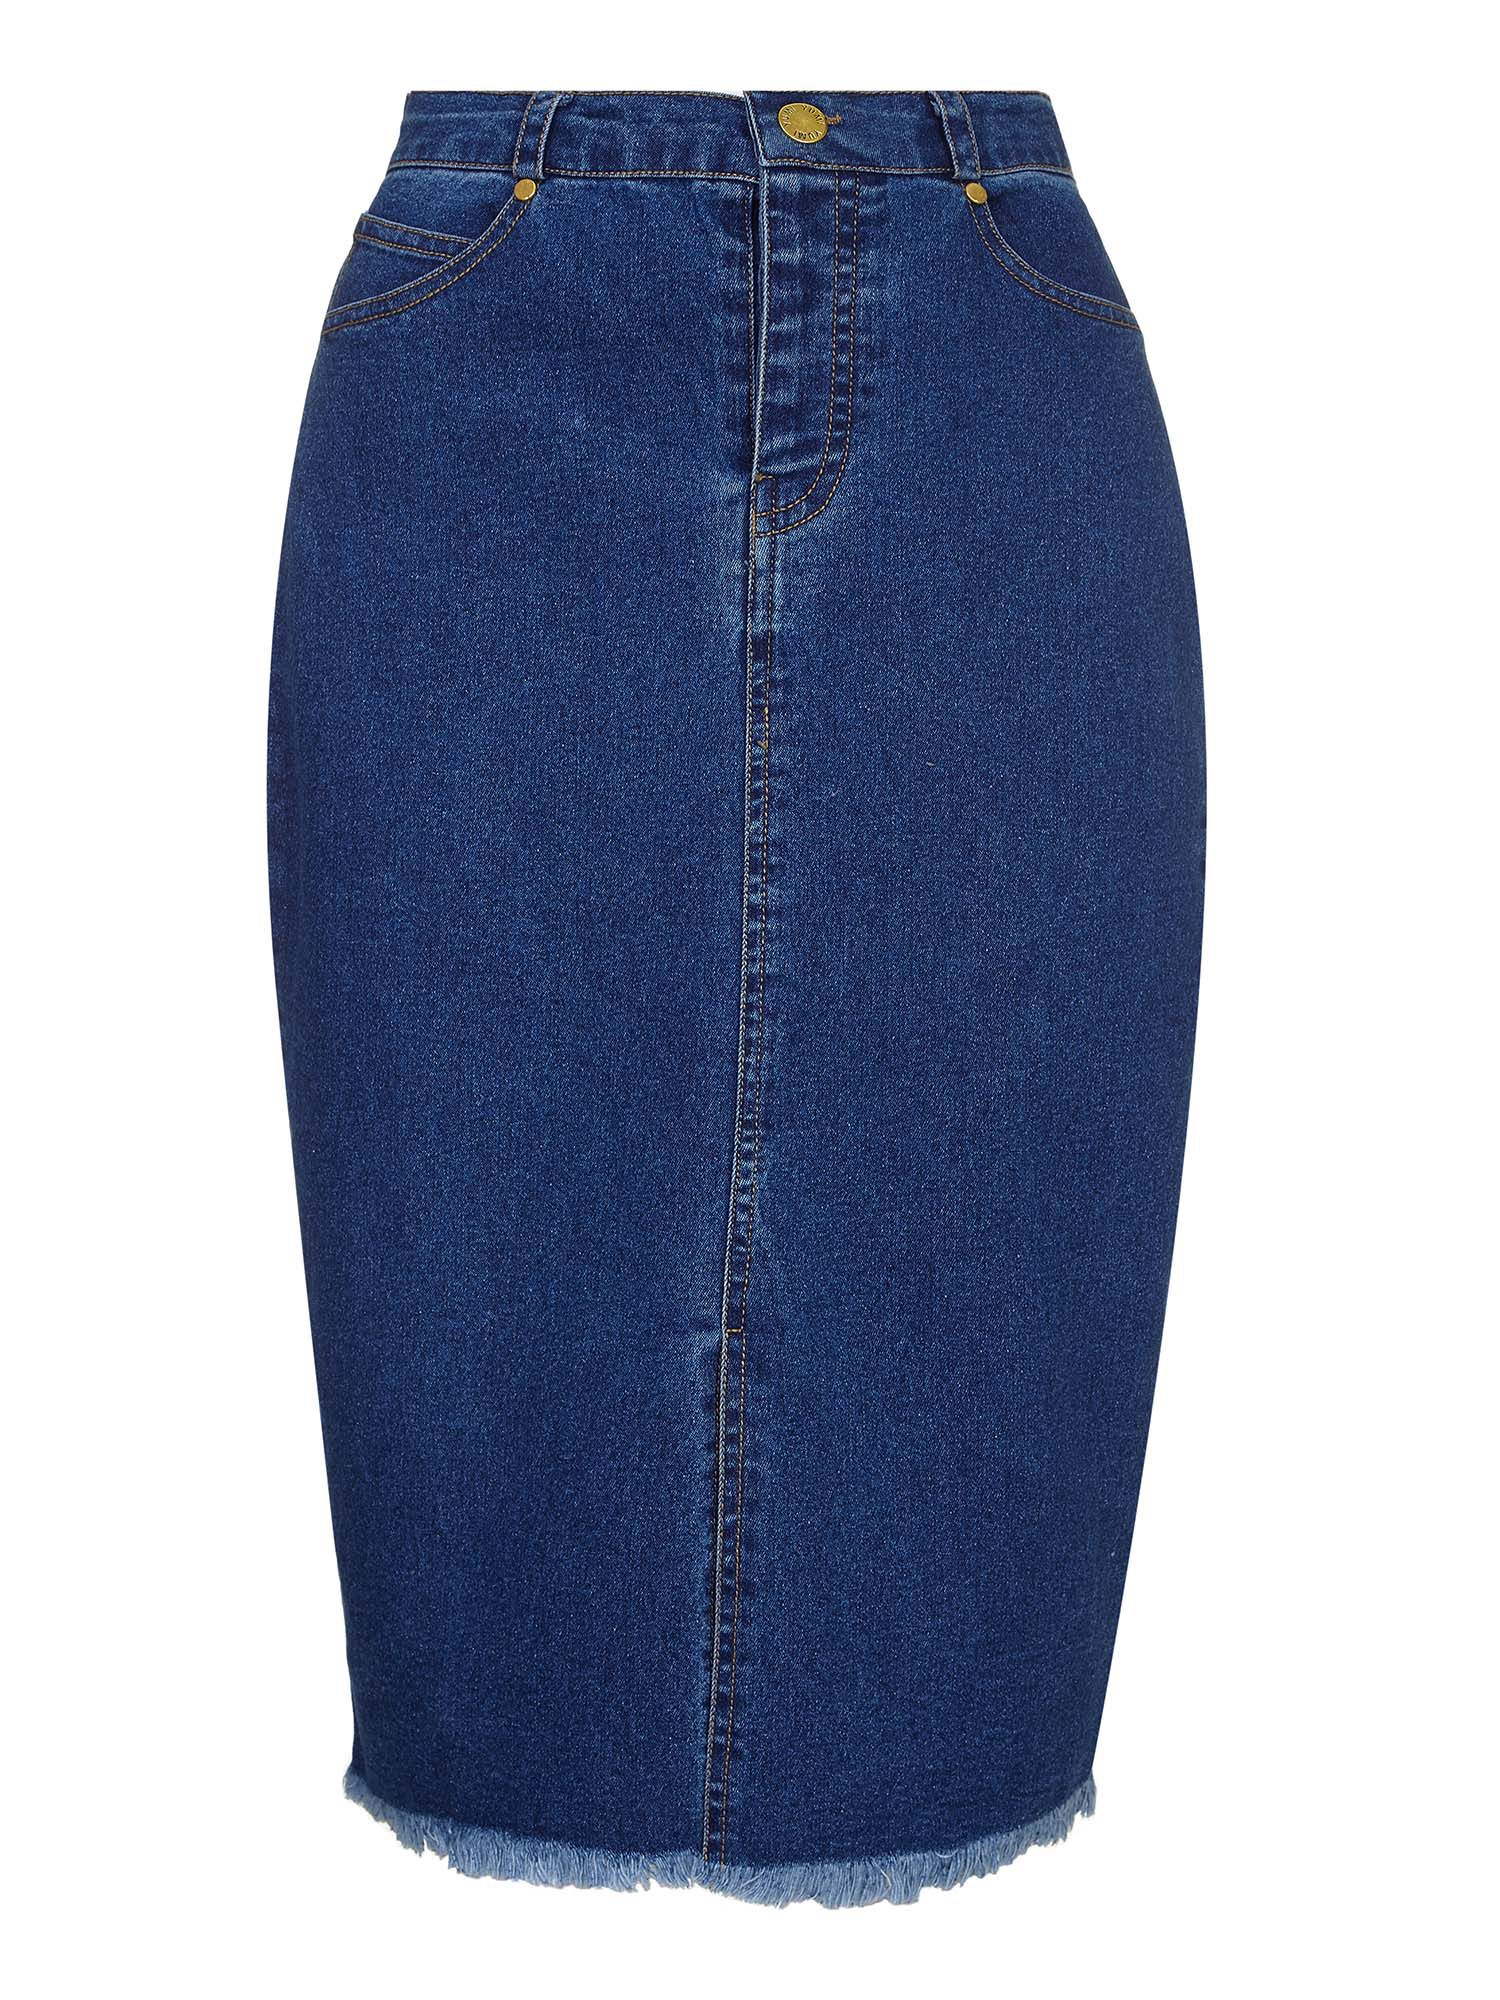 Yumi Midi Denim Pencil Skirt, Petrol